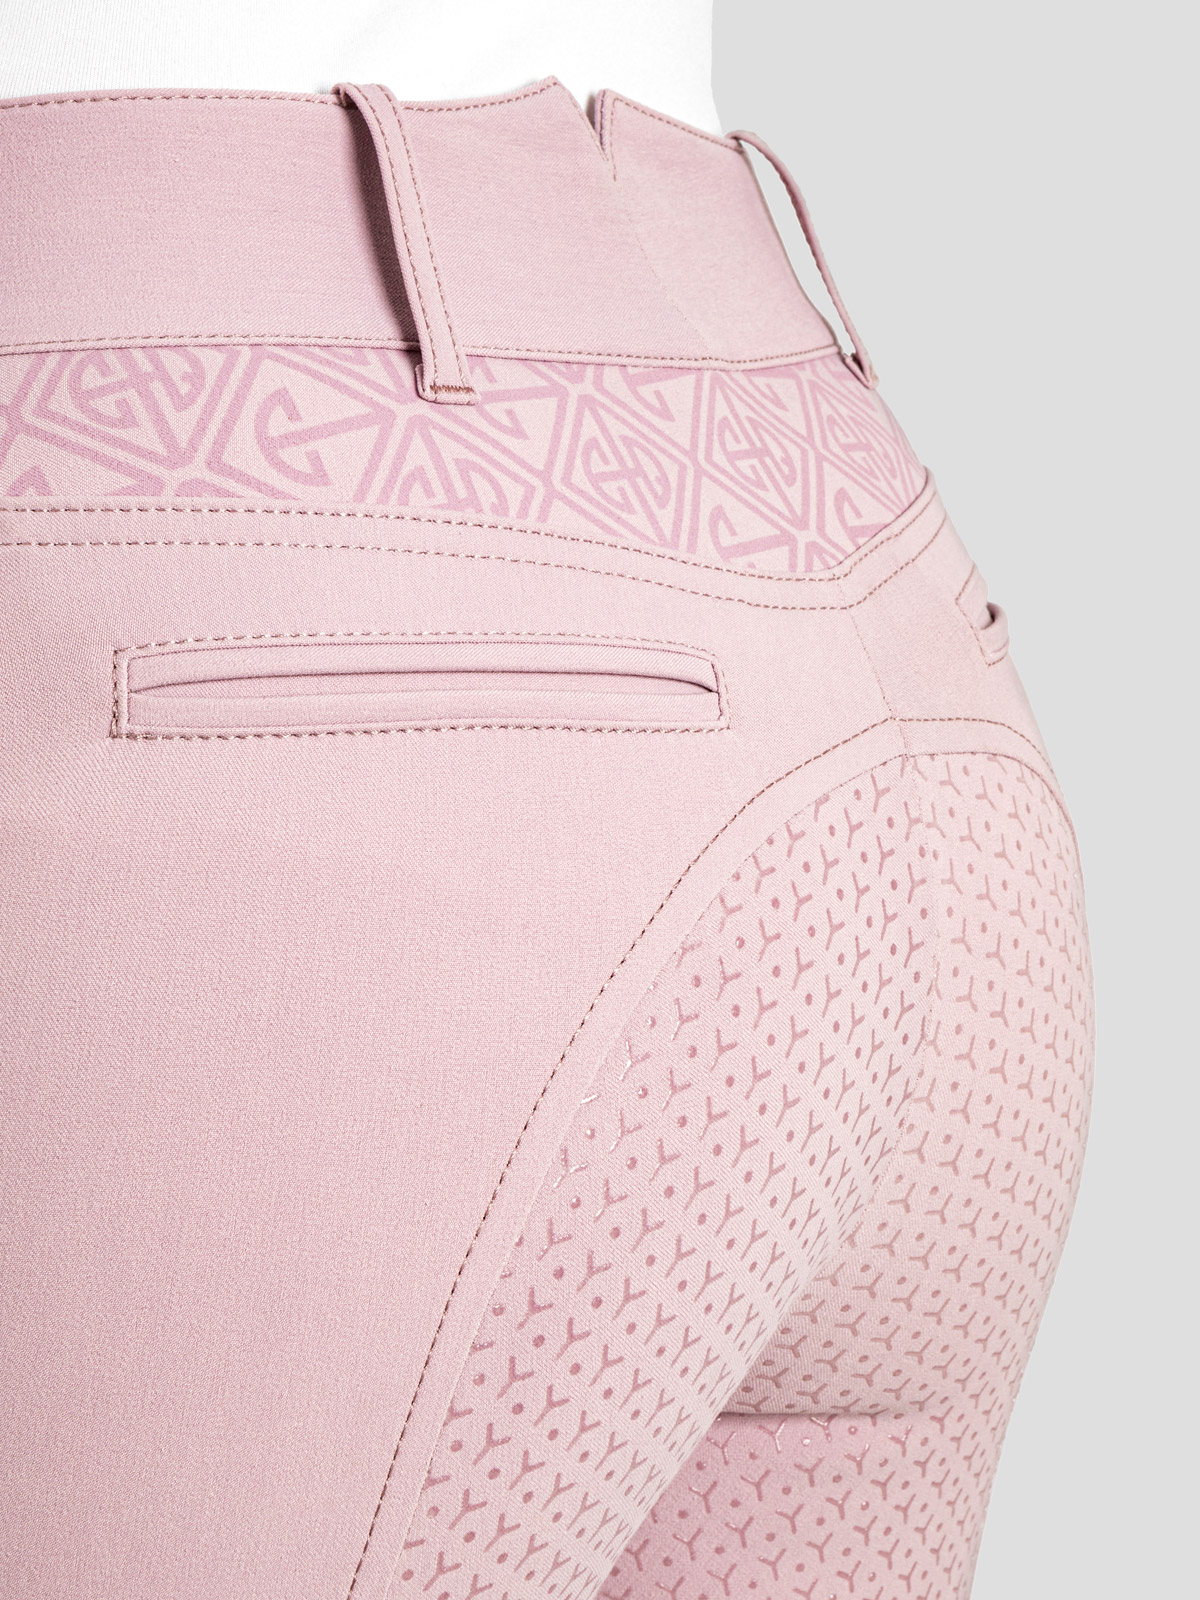 ESASHI WOMEN'S FULL SEAT GRIP BREECHES WITH LOGO PATTERN 5